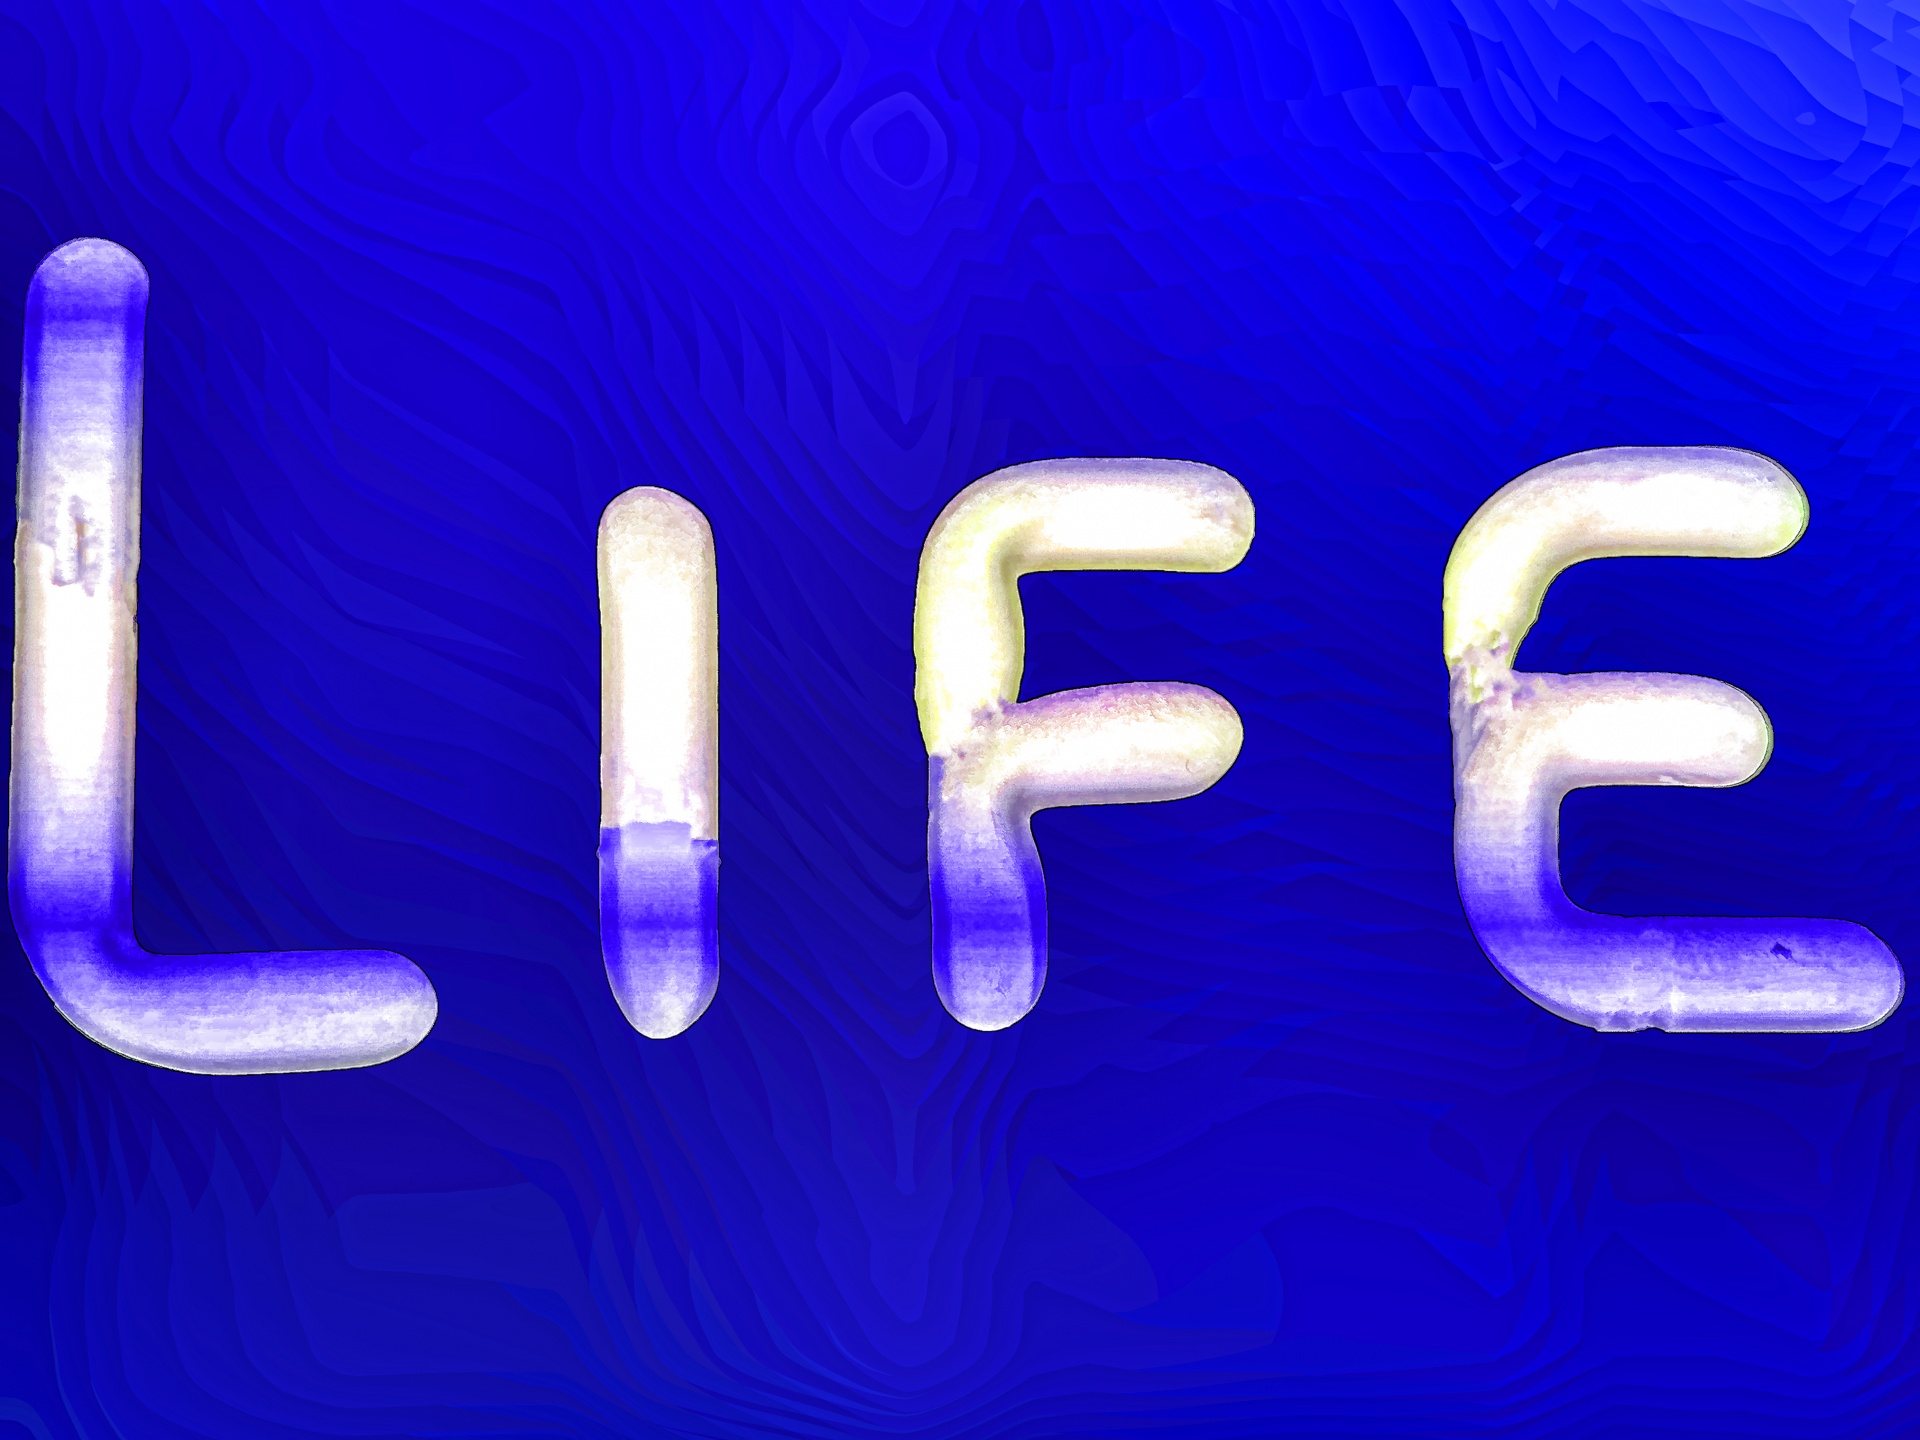 Life Sign Free Stock Photo - Public Domain Pictures